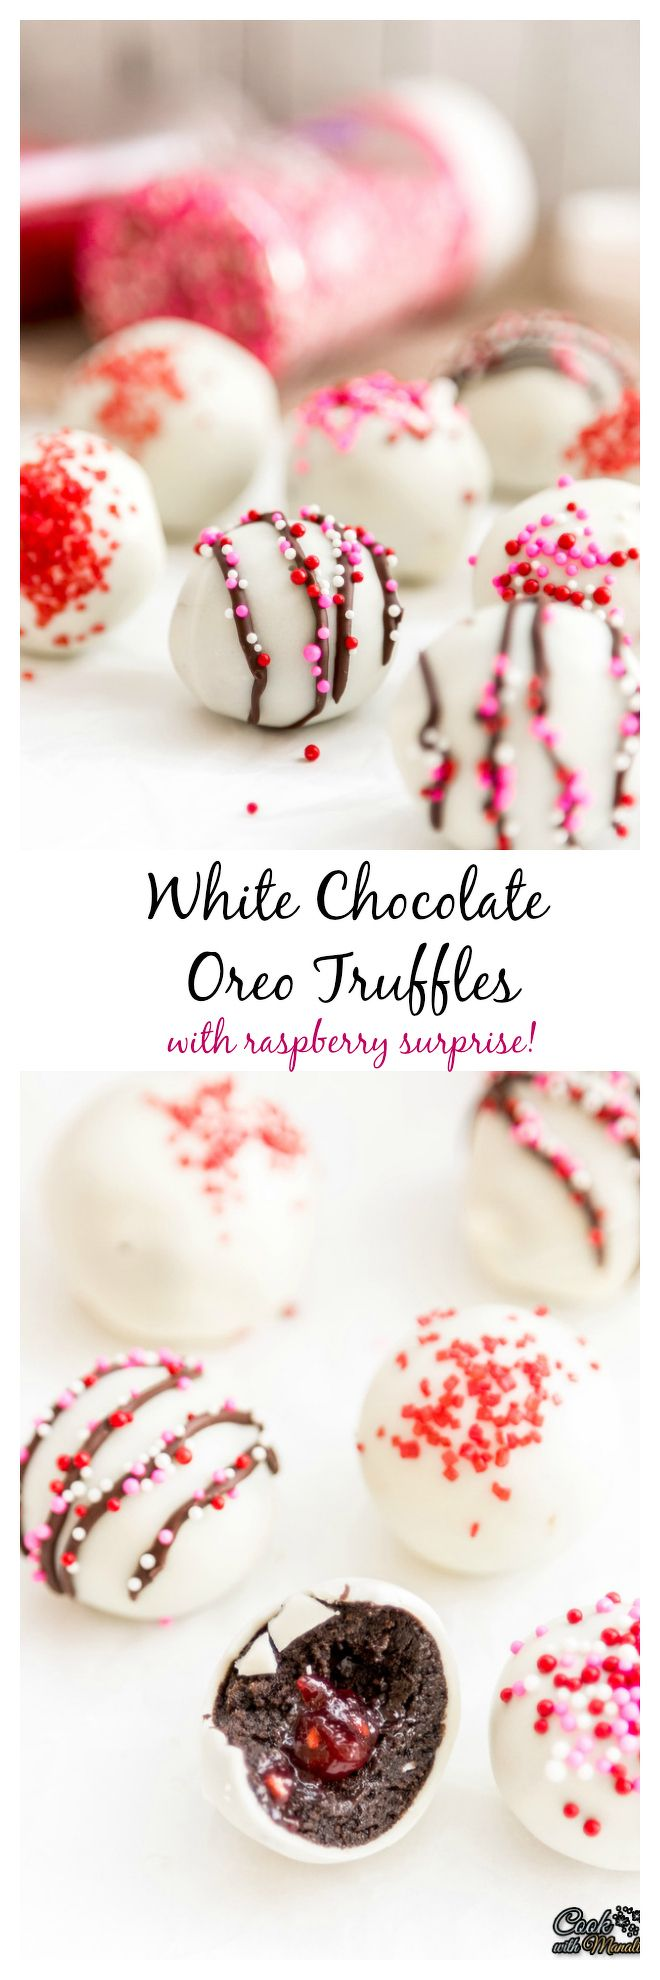 White Chocolate Oreo Truffles with Raspberry surprise in the center are super easy & delicious! #chocolate #oreo